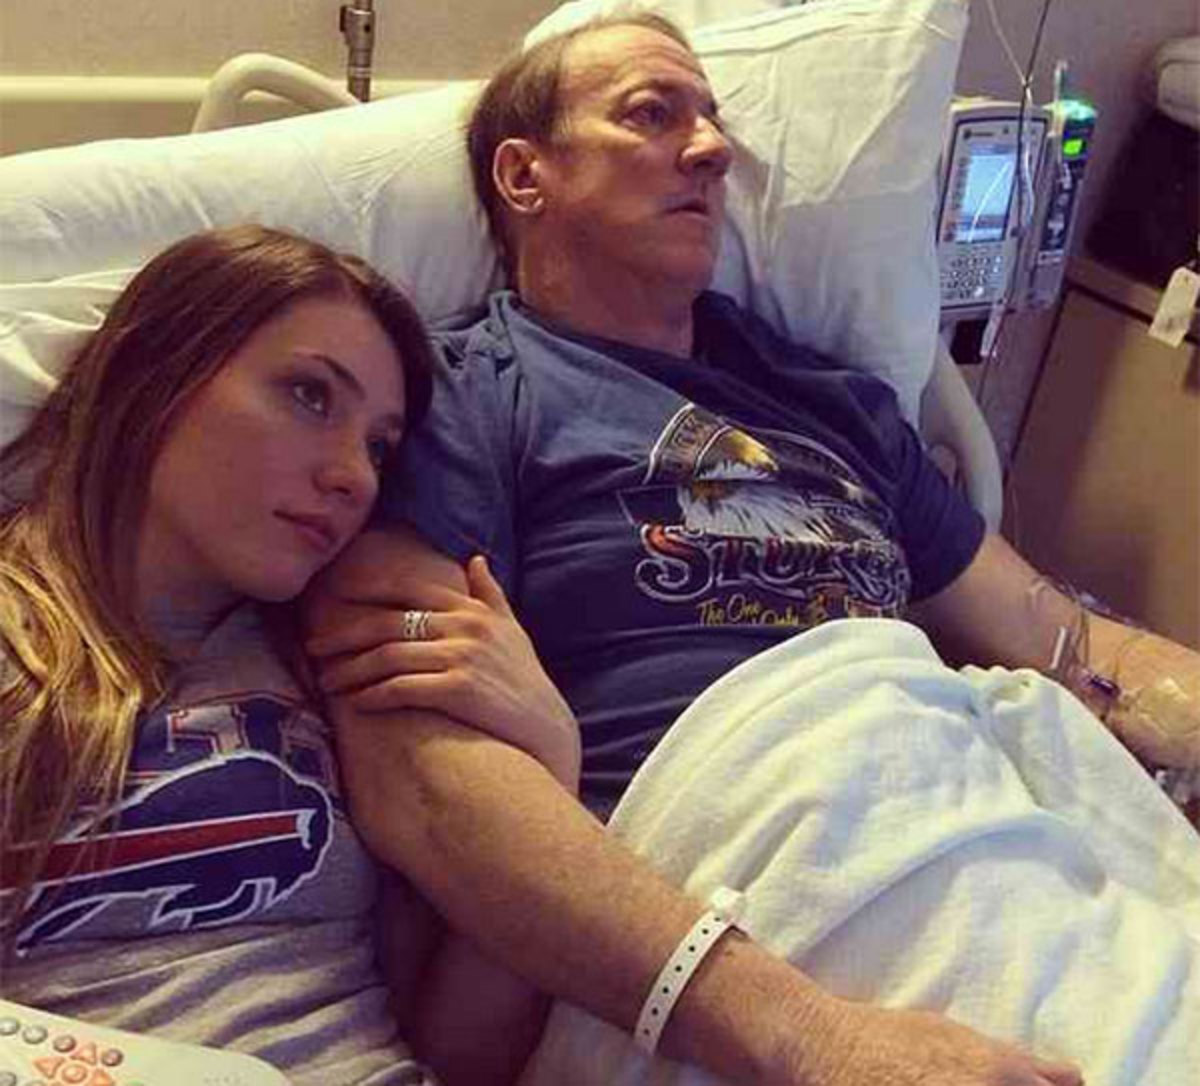 """Jim Kelly's daughter Erin posted this picture on Instagram with the caption: """"Watching the Syracuse game with daddy. he's my buddy! Love him so much!! #daddysgirl #prayersforjk #KellytoughFollow"""""""